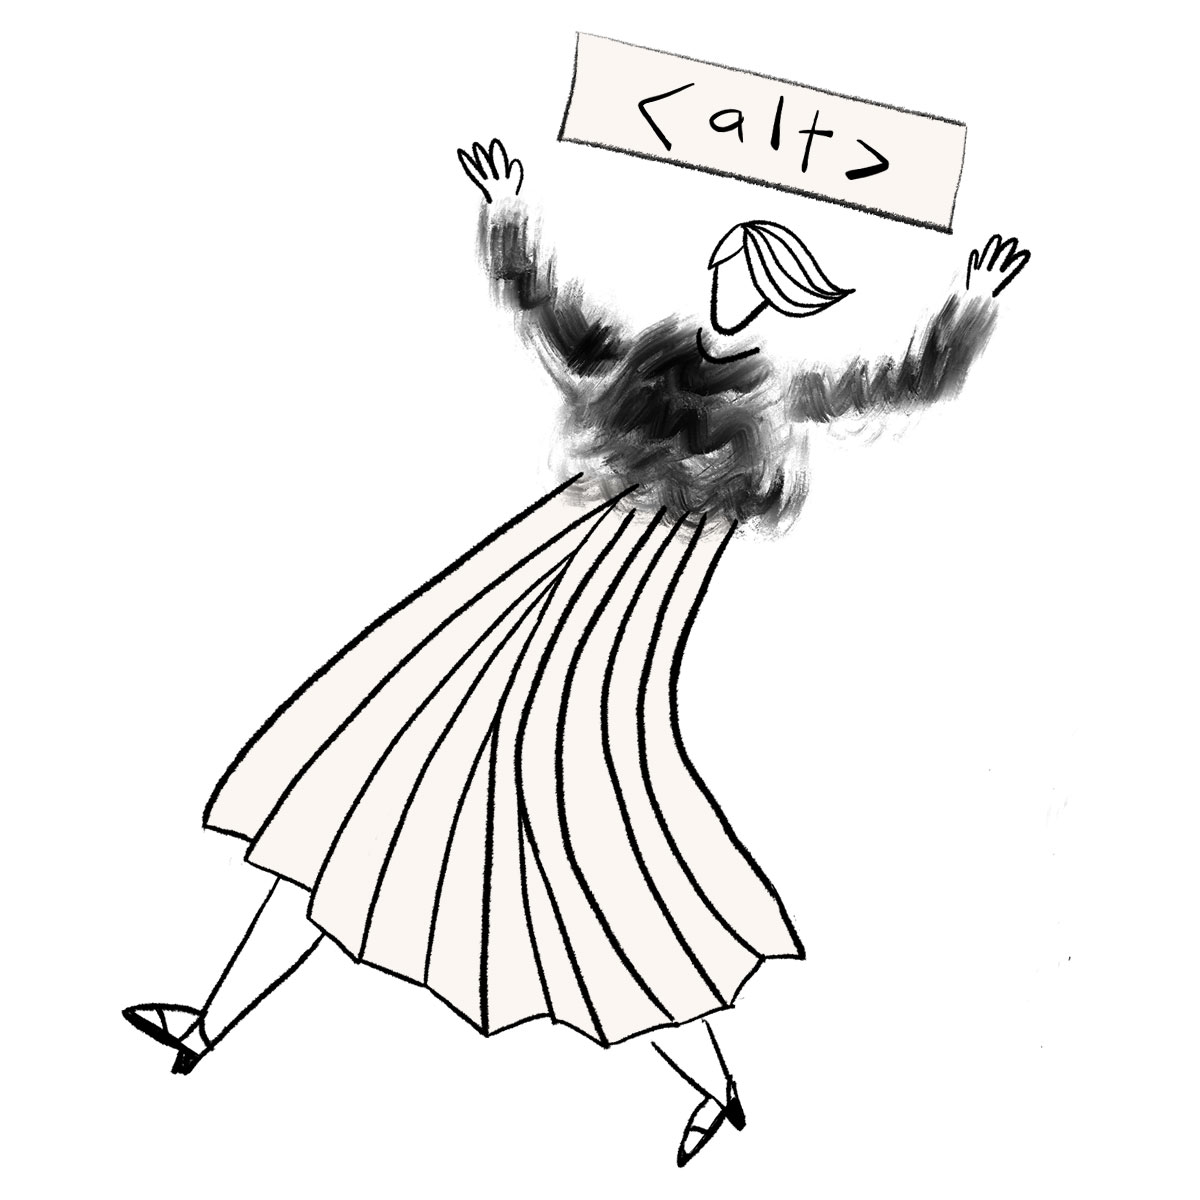 Illustration of a woman holing a sign with <alt> on it